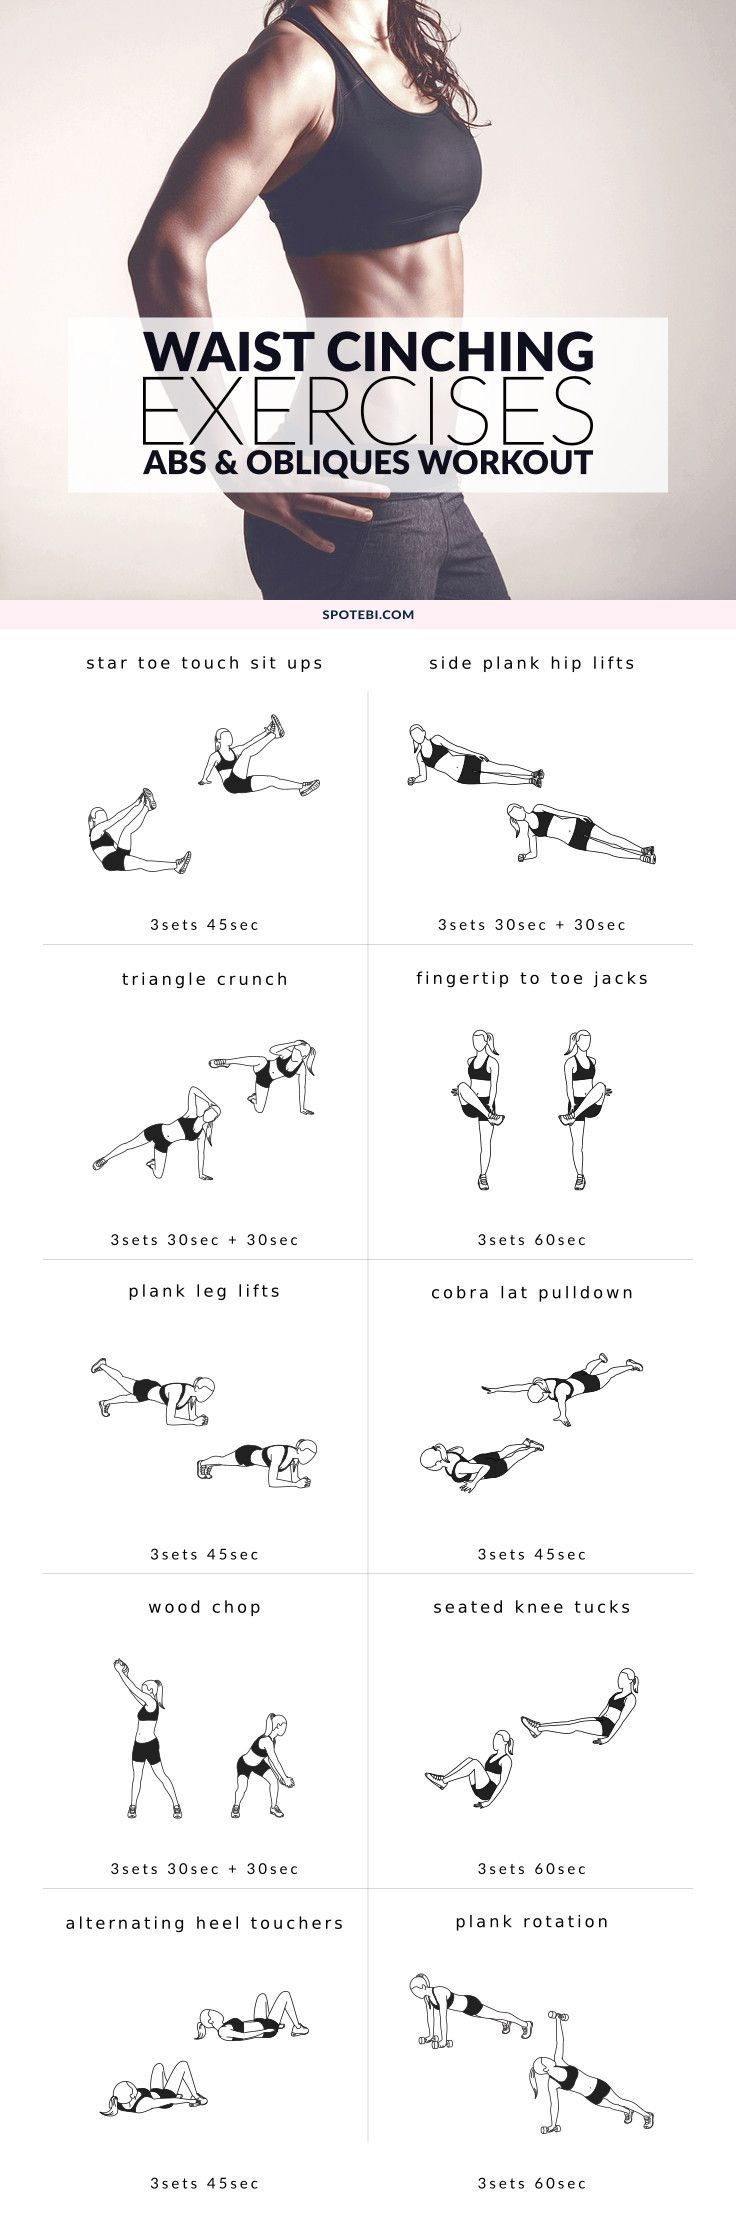 Waist Cinching Exercise